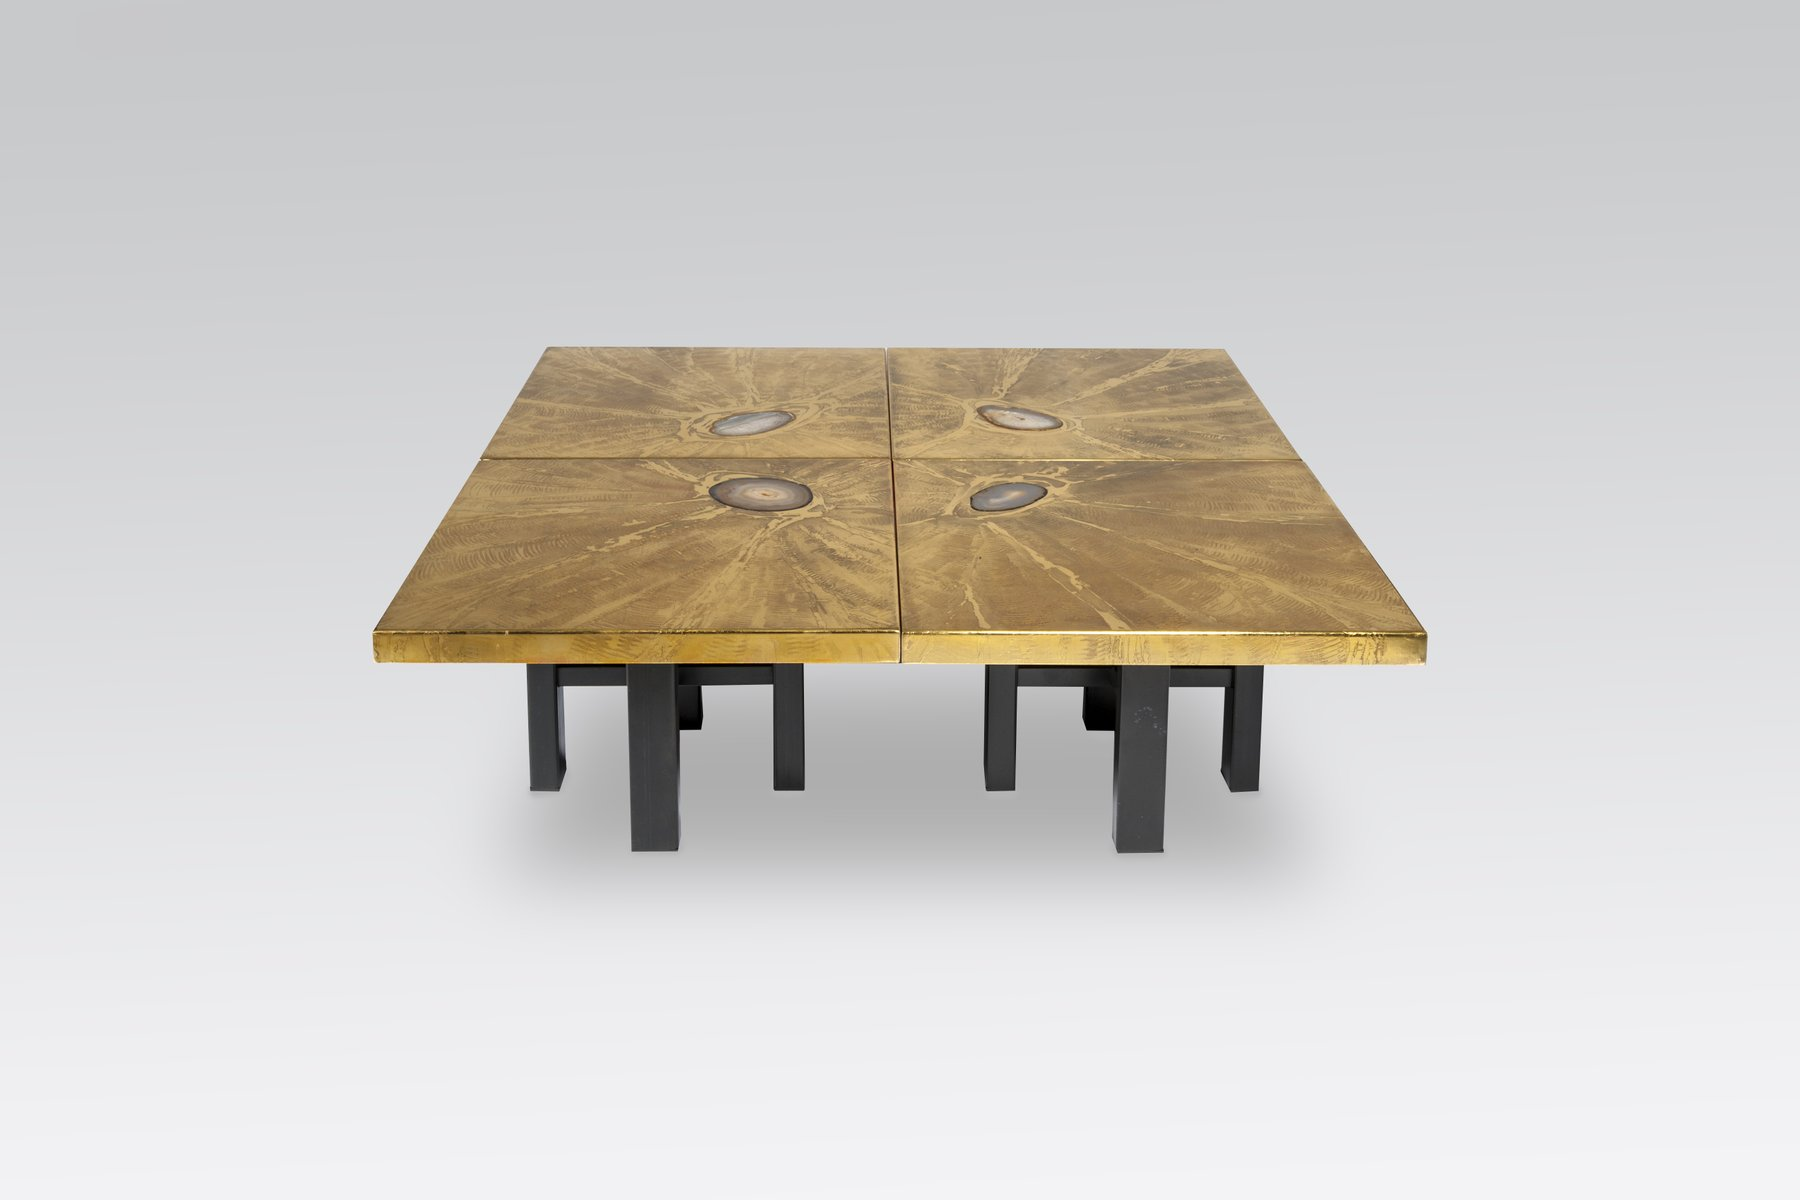 - Modular Coffee Tables With Brass Engravings & Agate Inlays By Lova